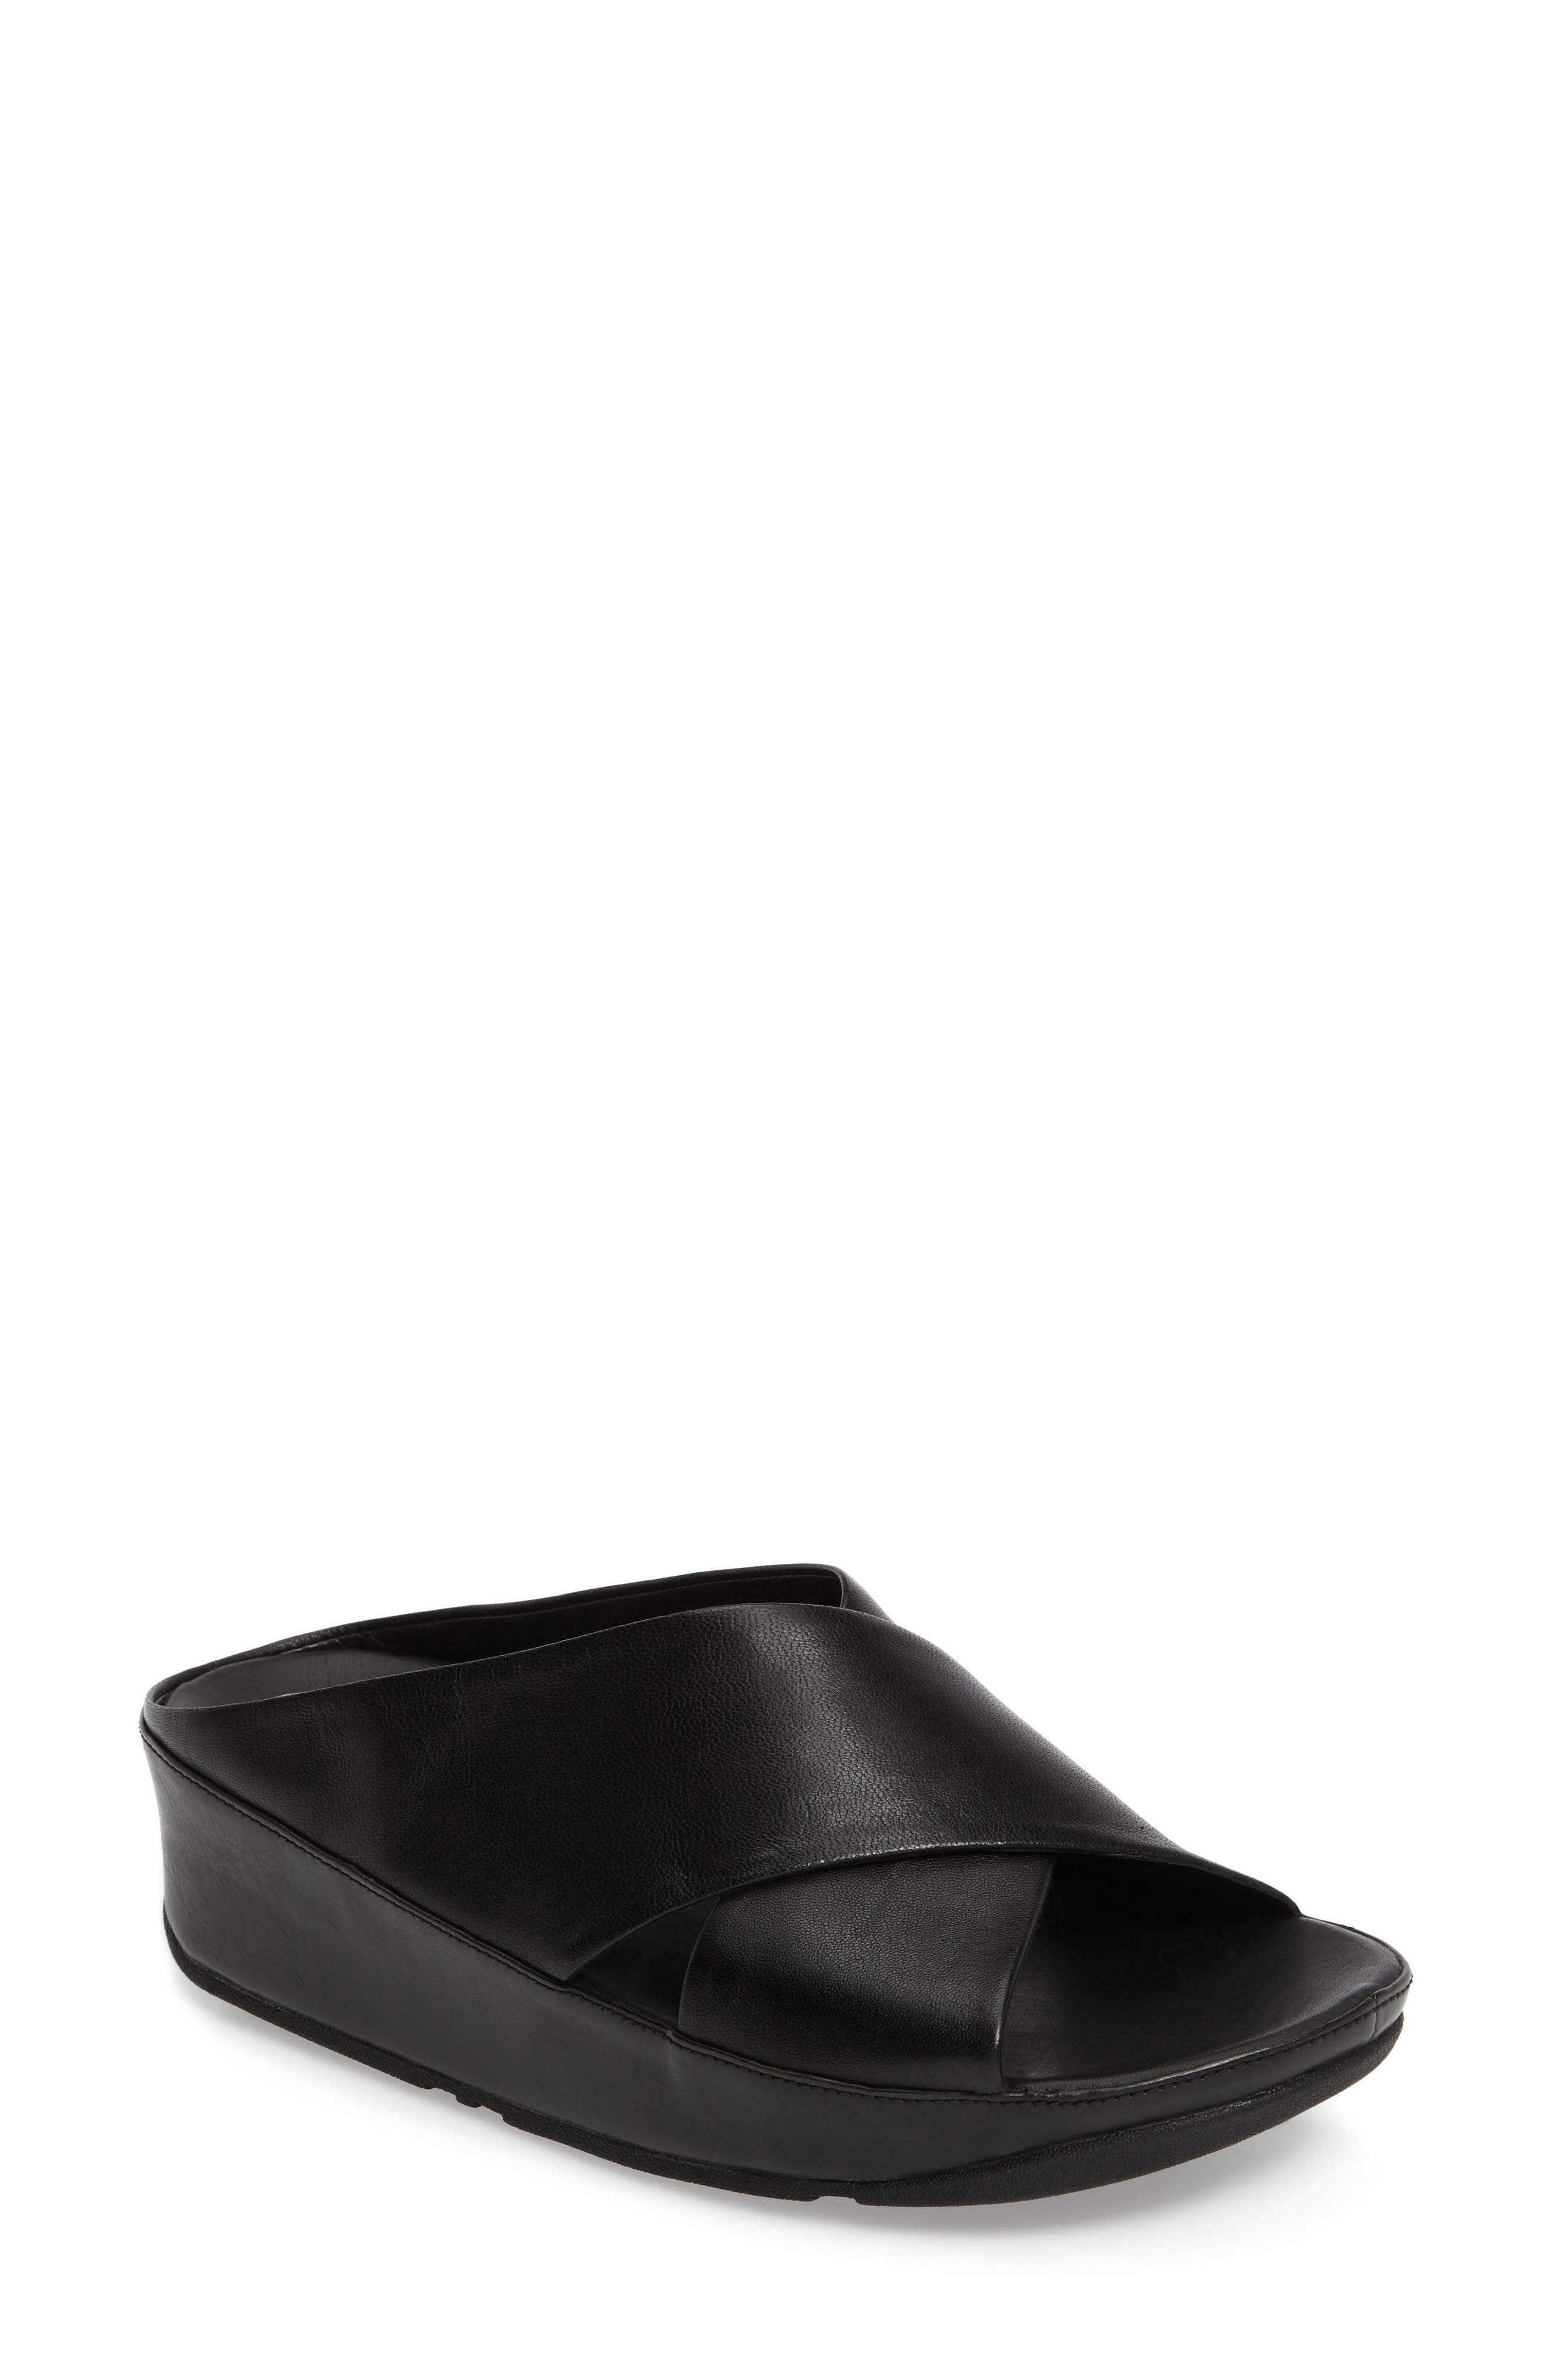 FitFlop Kys Backless Platform Wedge (Women)